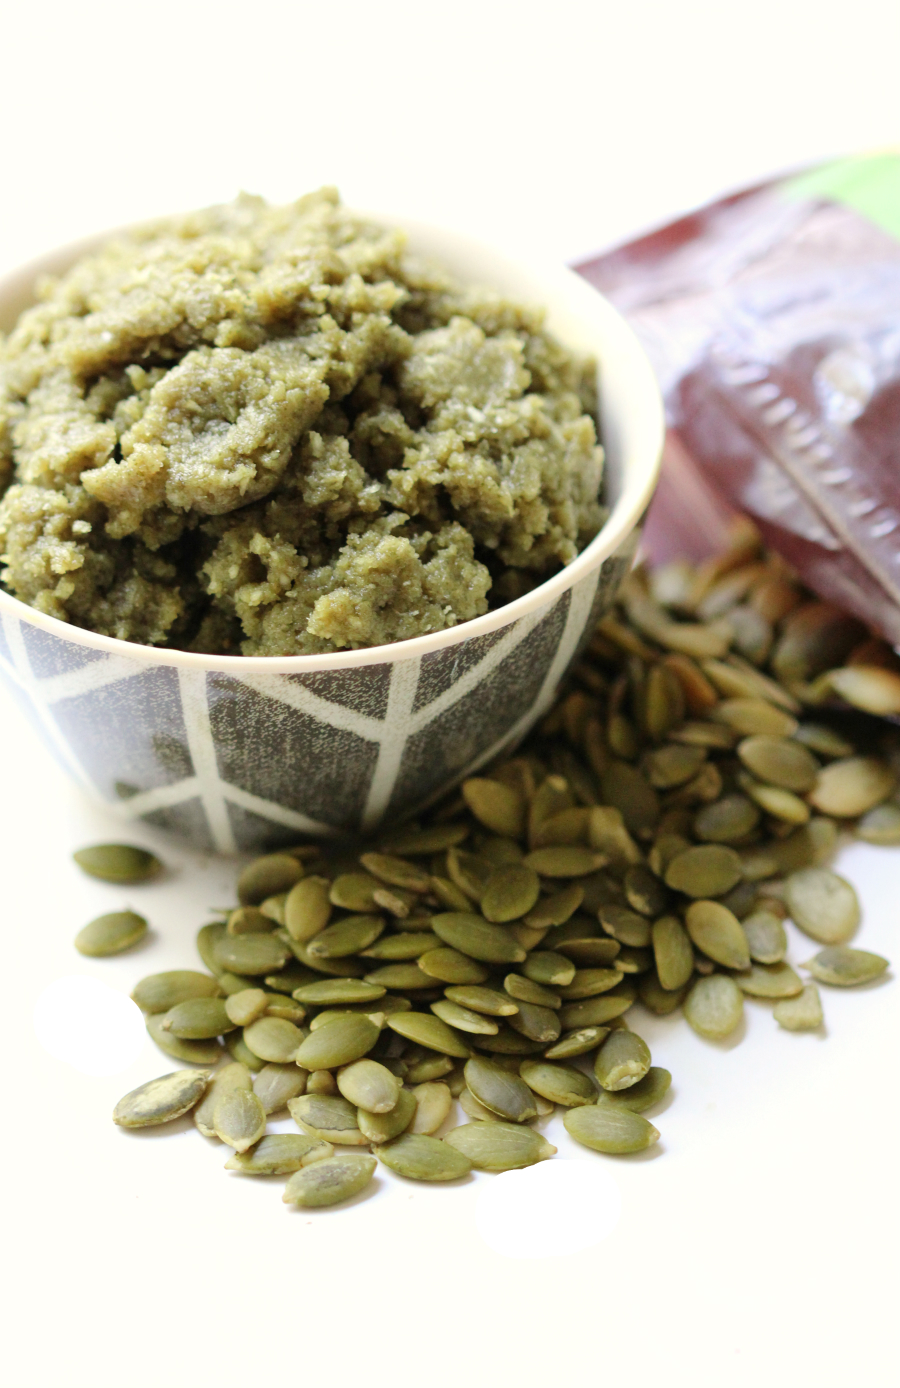 Raw Coconut Pumpkin Seed Butter | Strength and Sunshine @RebeccaGF666 A sweetly delicious and allergy-friendly spread for the ultimate snacking! A simple Raw Coconut Pumpkin Seed Butter recipe that's gluten-free, vegan, paleo, and nut-free! Use it as a dip or spread for fruit, toast, maybe just eaten with a spoon!